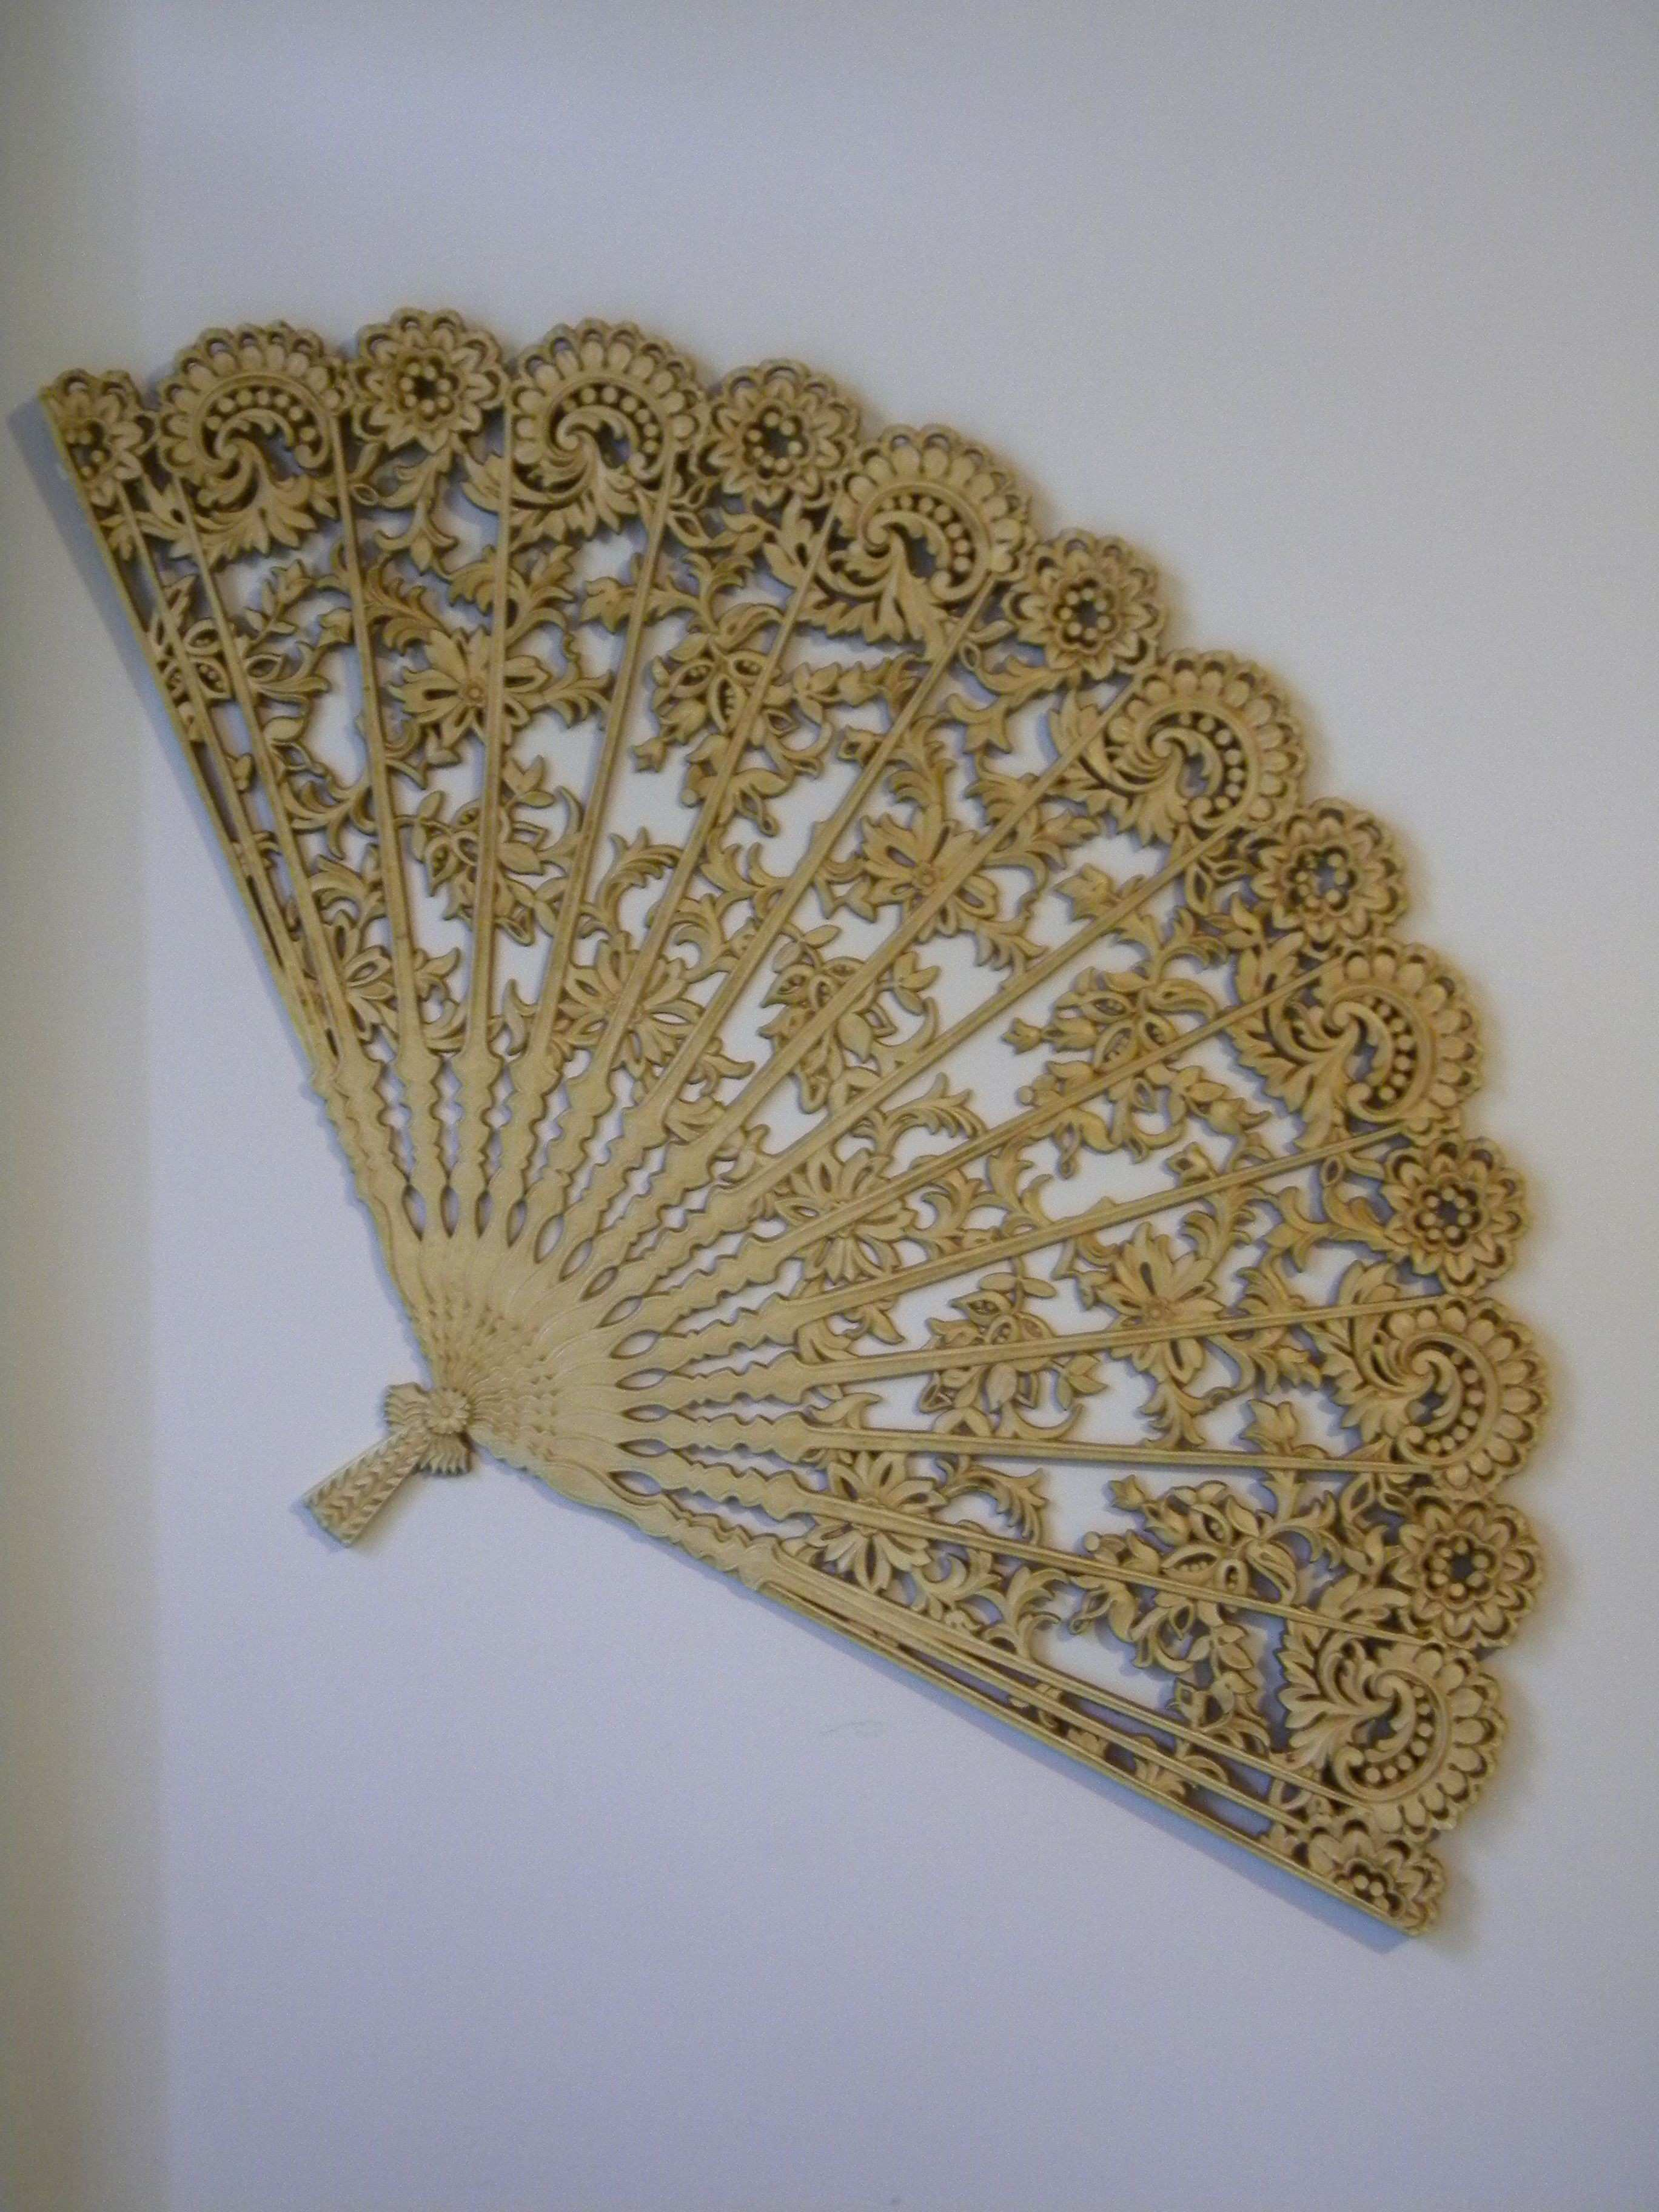 Huge Chinese Fan wall decor Love this